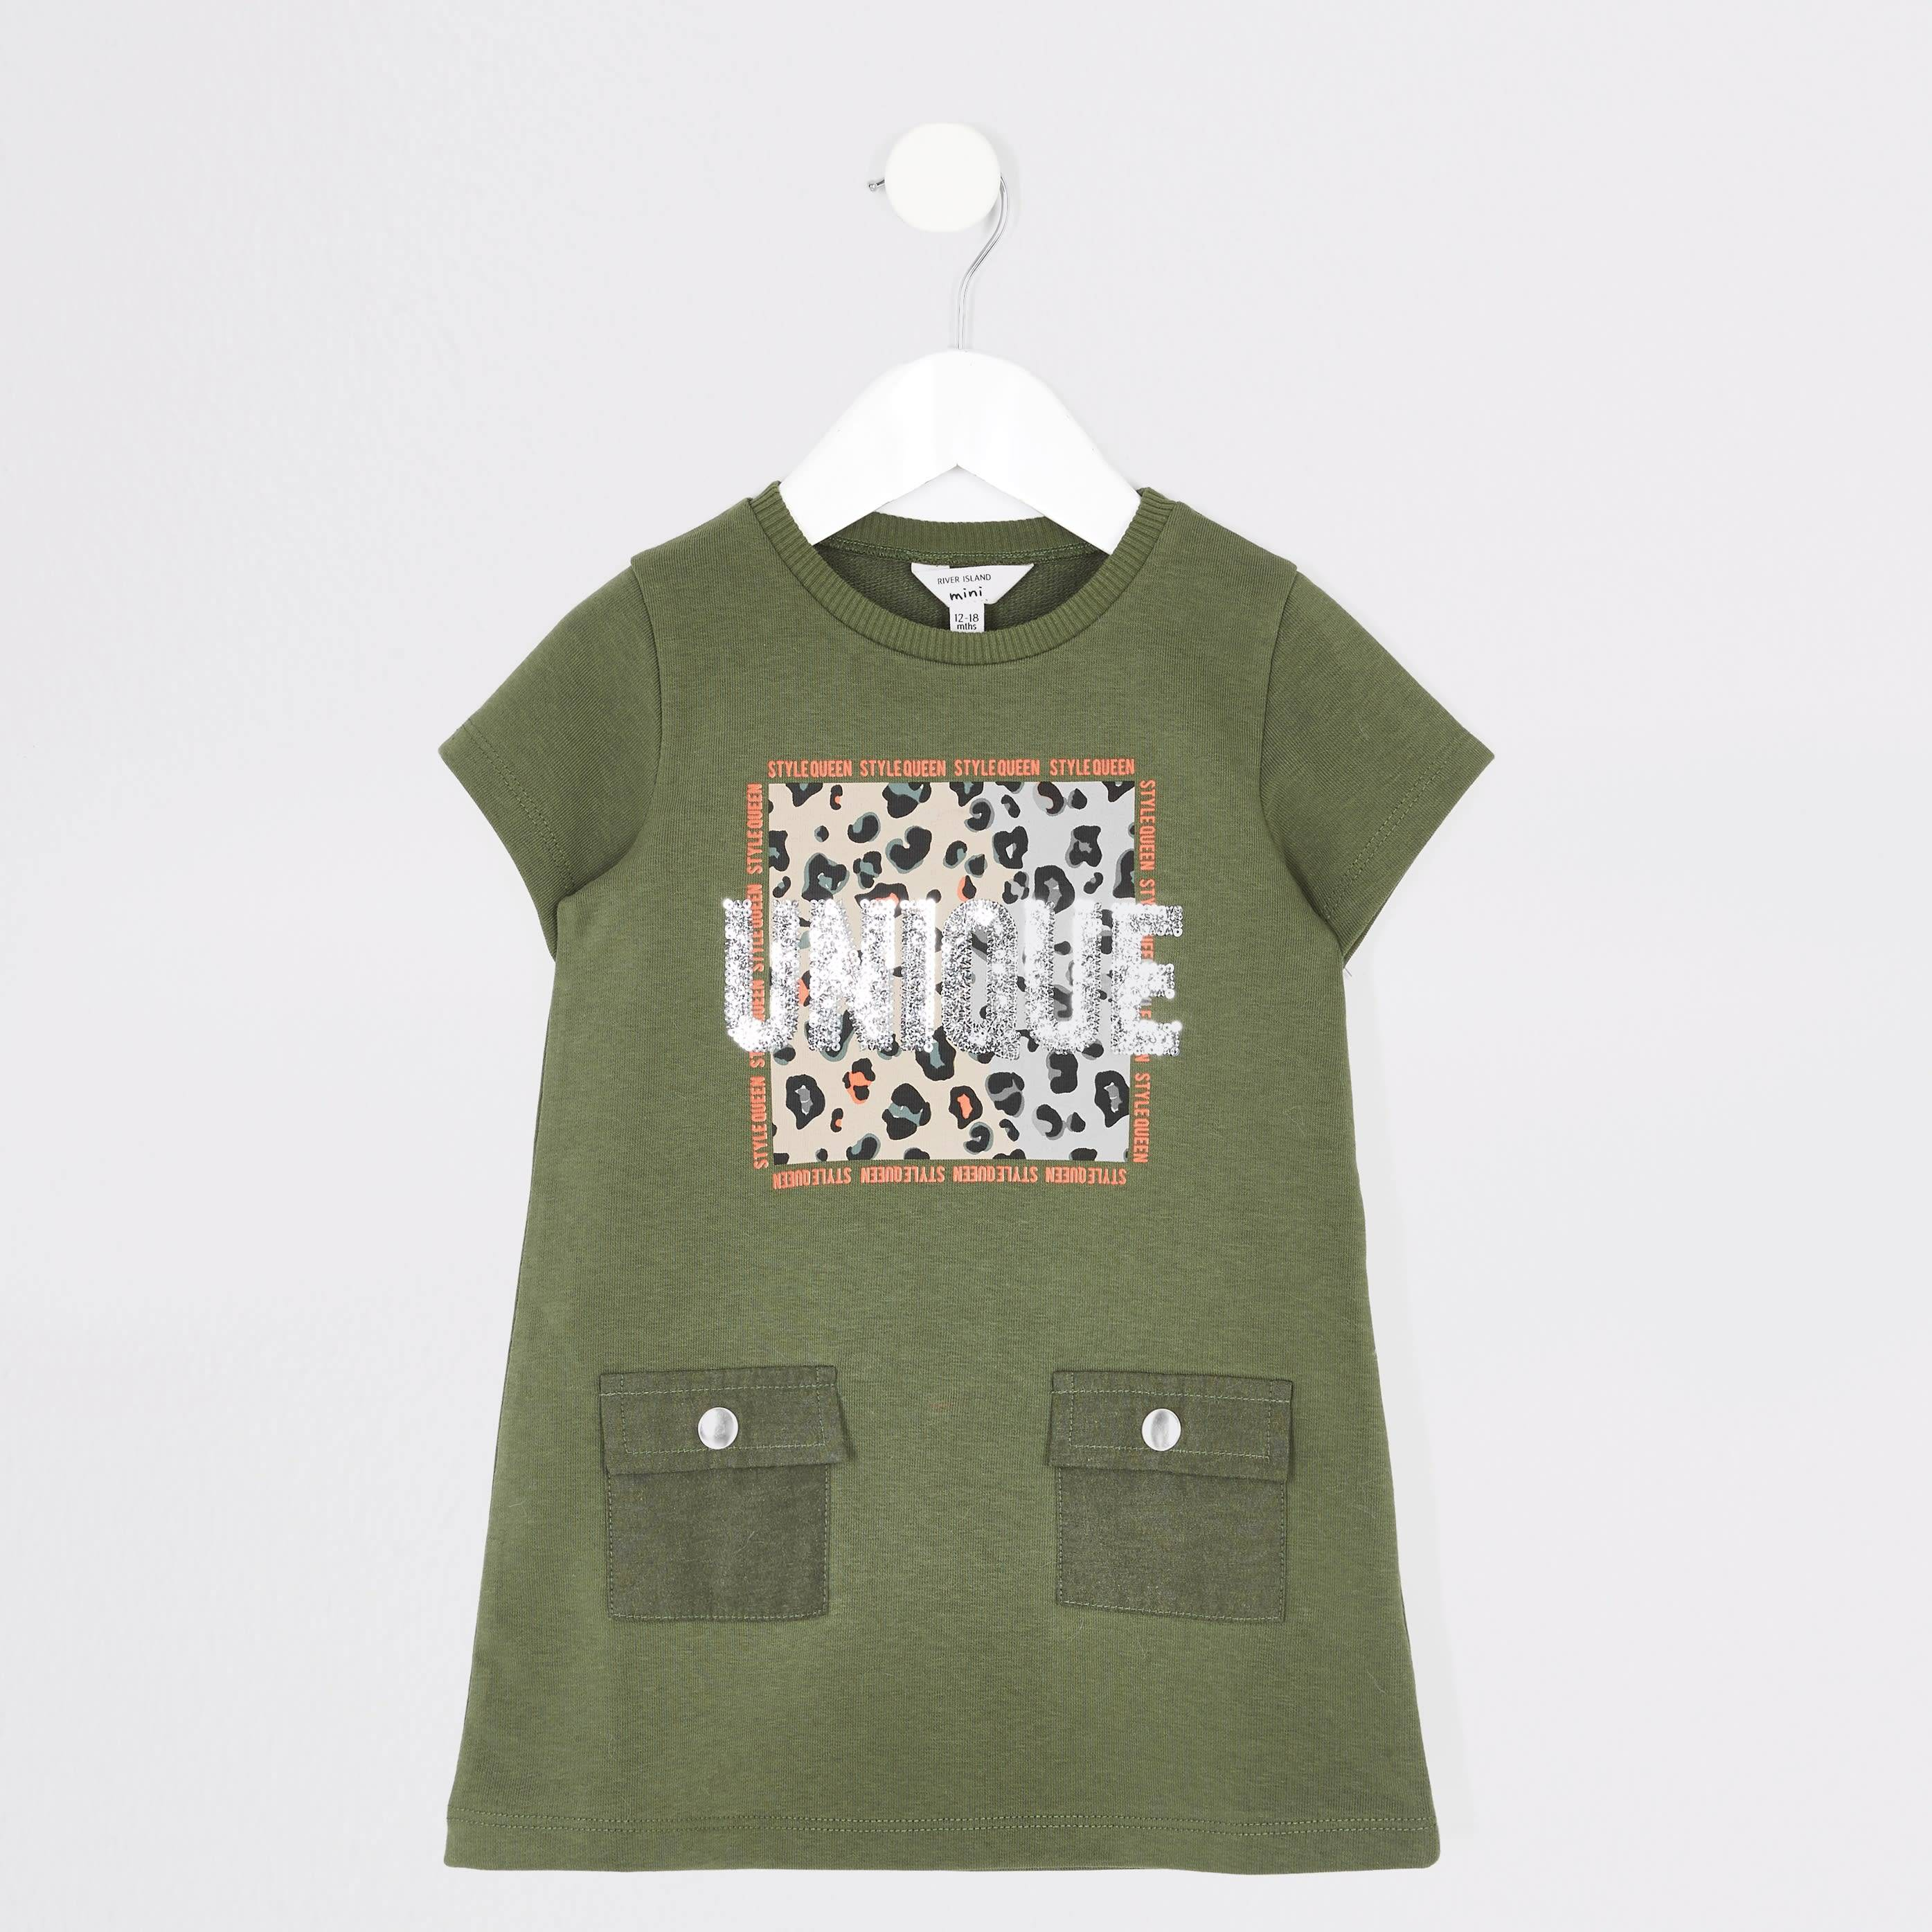 River Island Baby Girls Khaki 'Unique' T-shirt dress (3-4 Yrs)